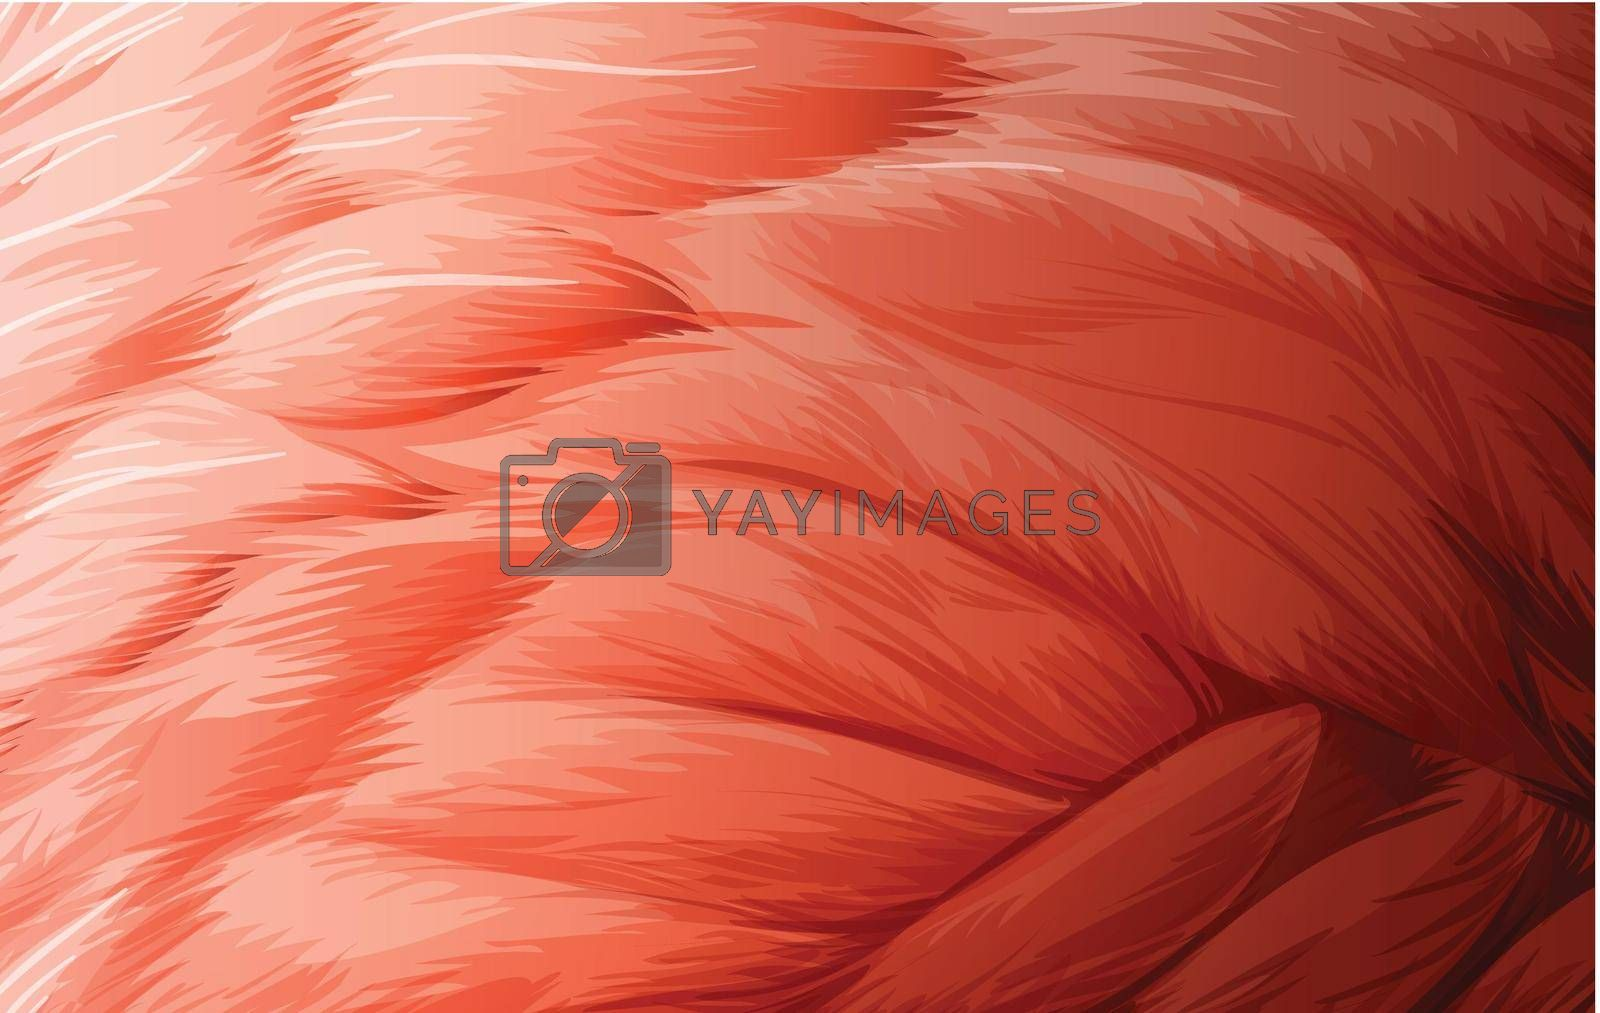 Royalty free image of Feather texture by iimages